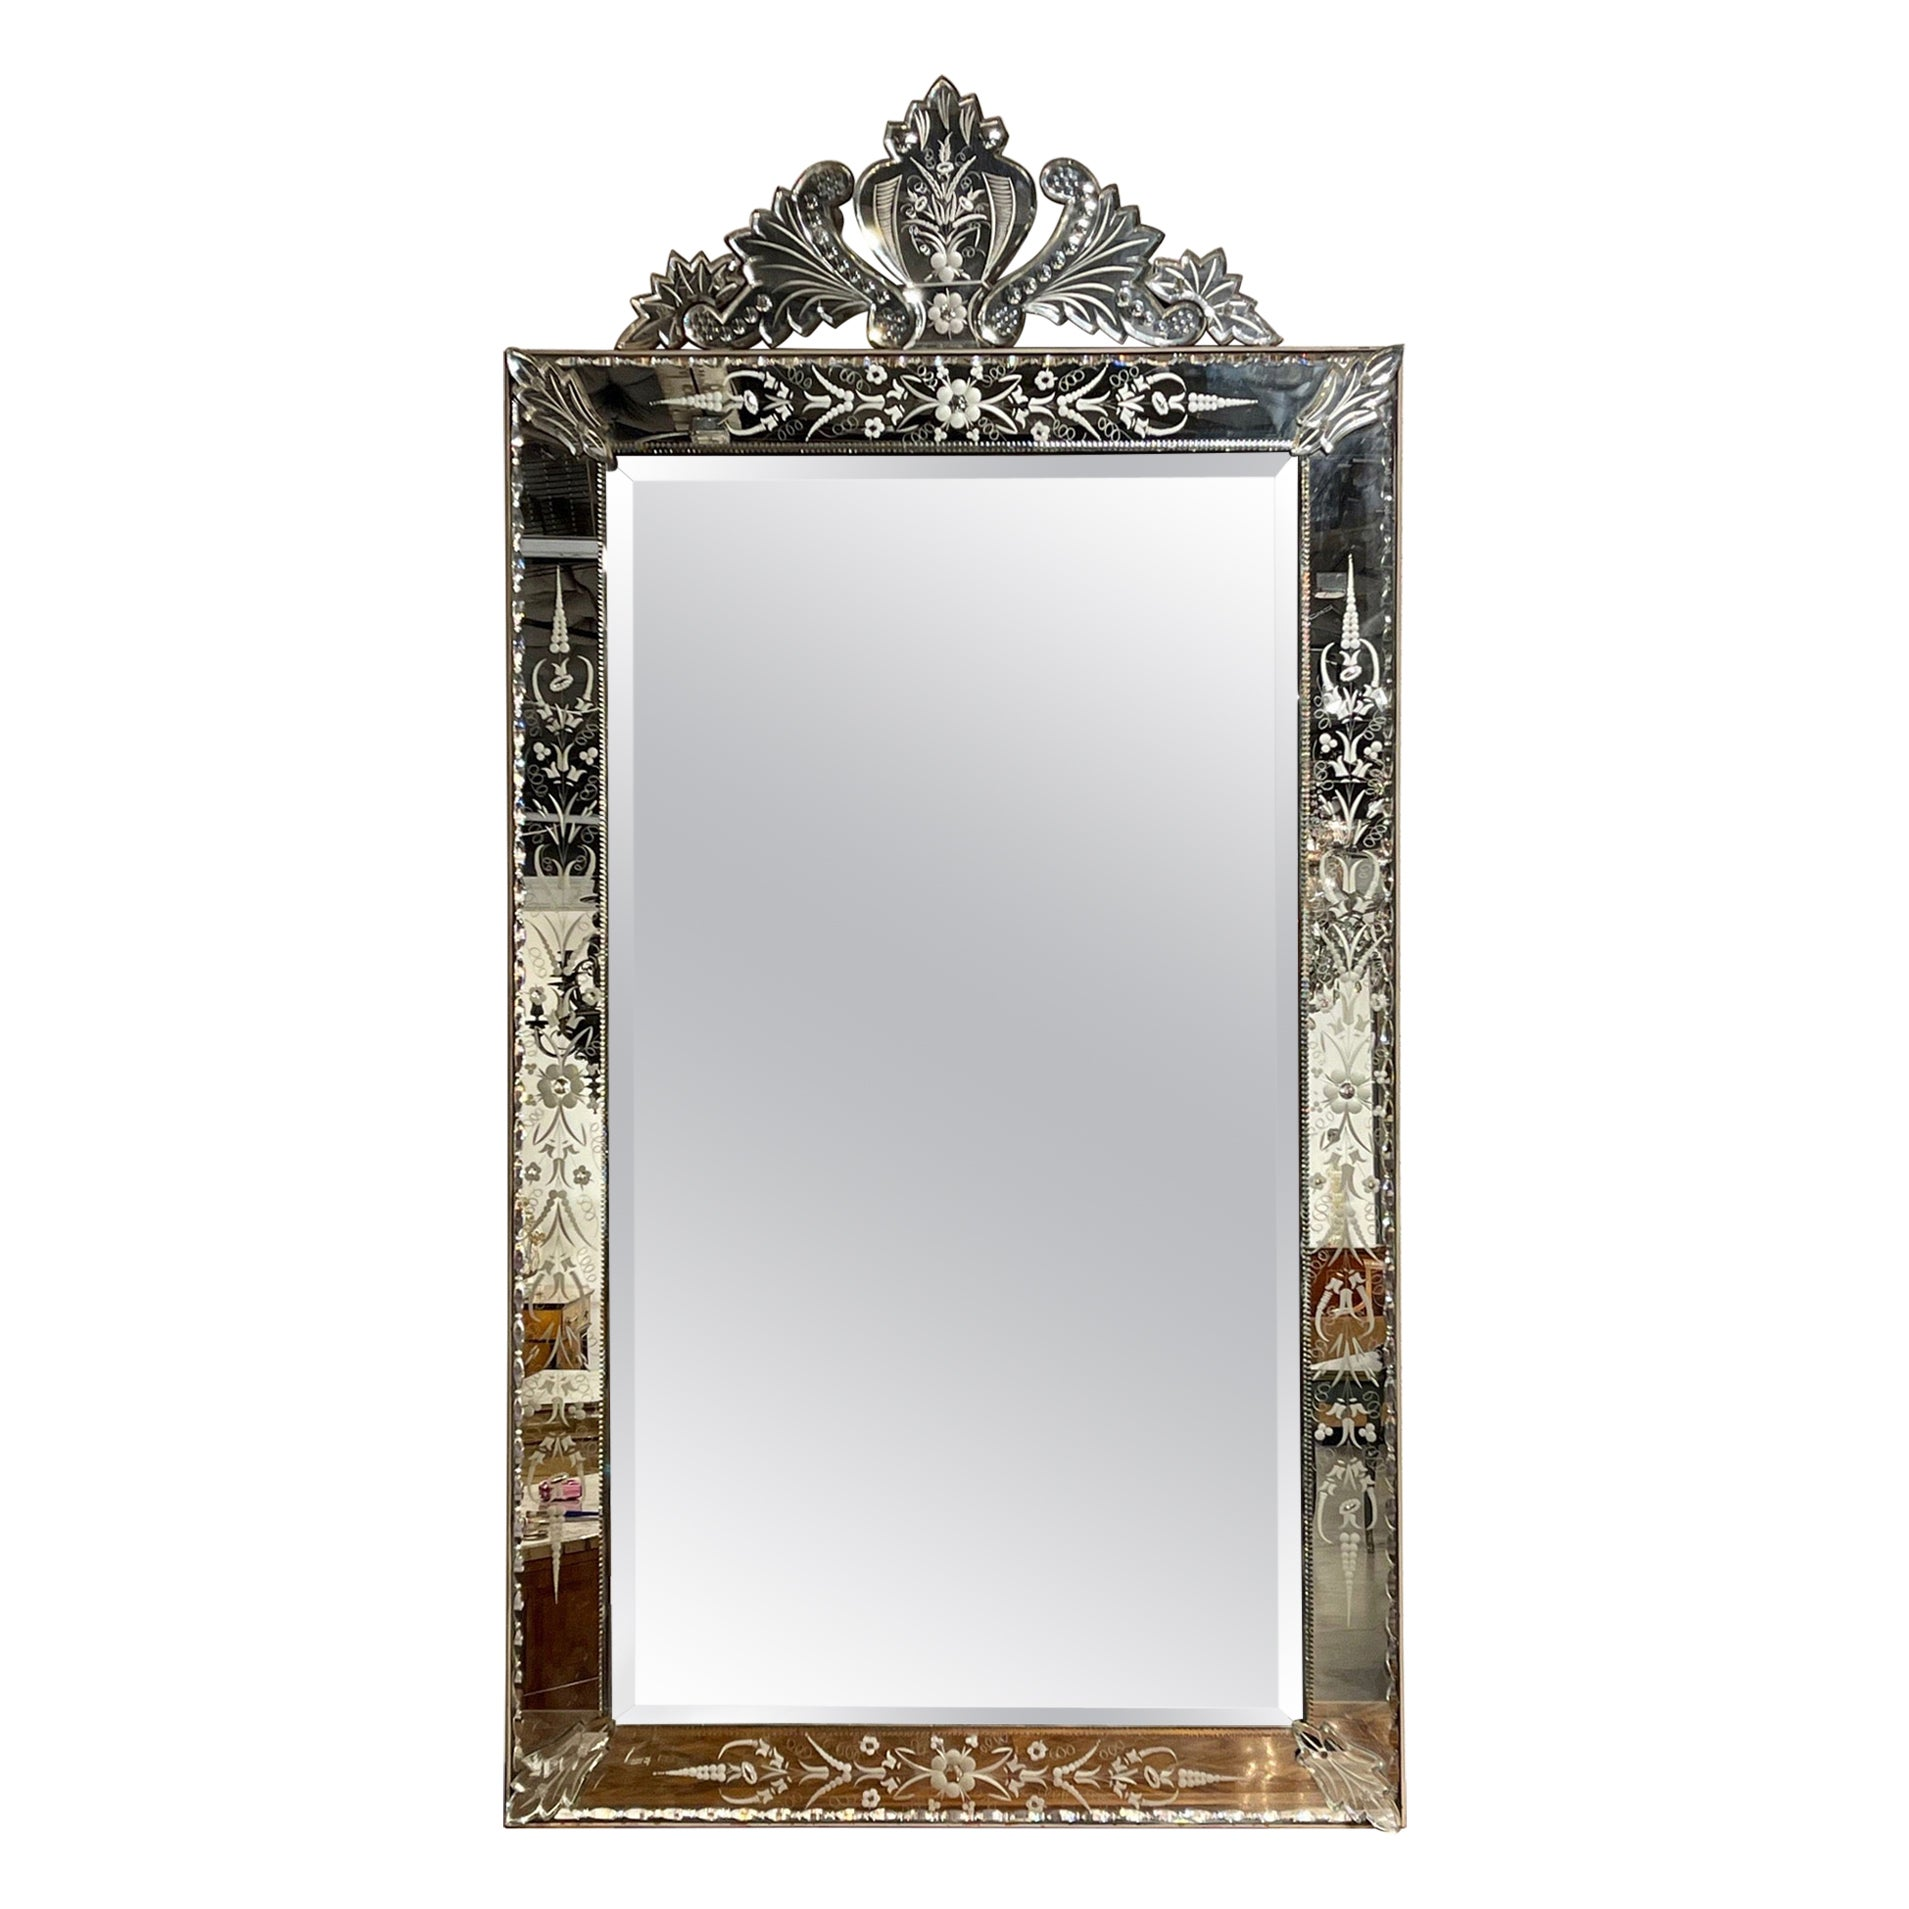 Early 20th Century Venetian Etched Glass Mirror